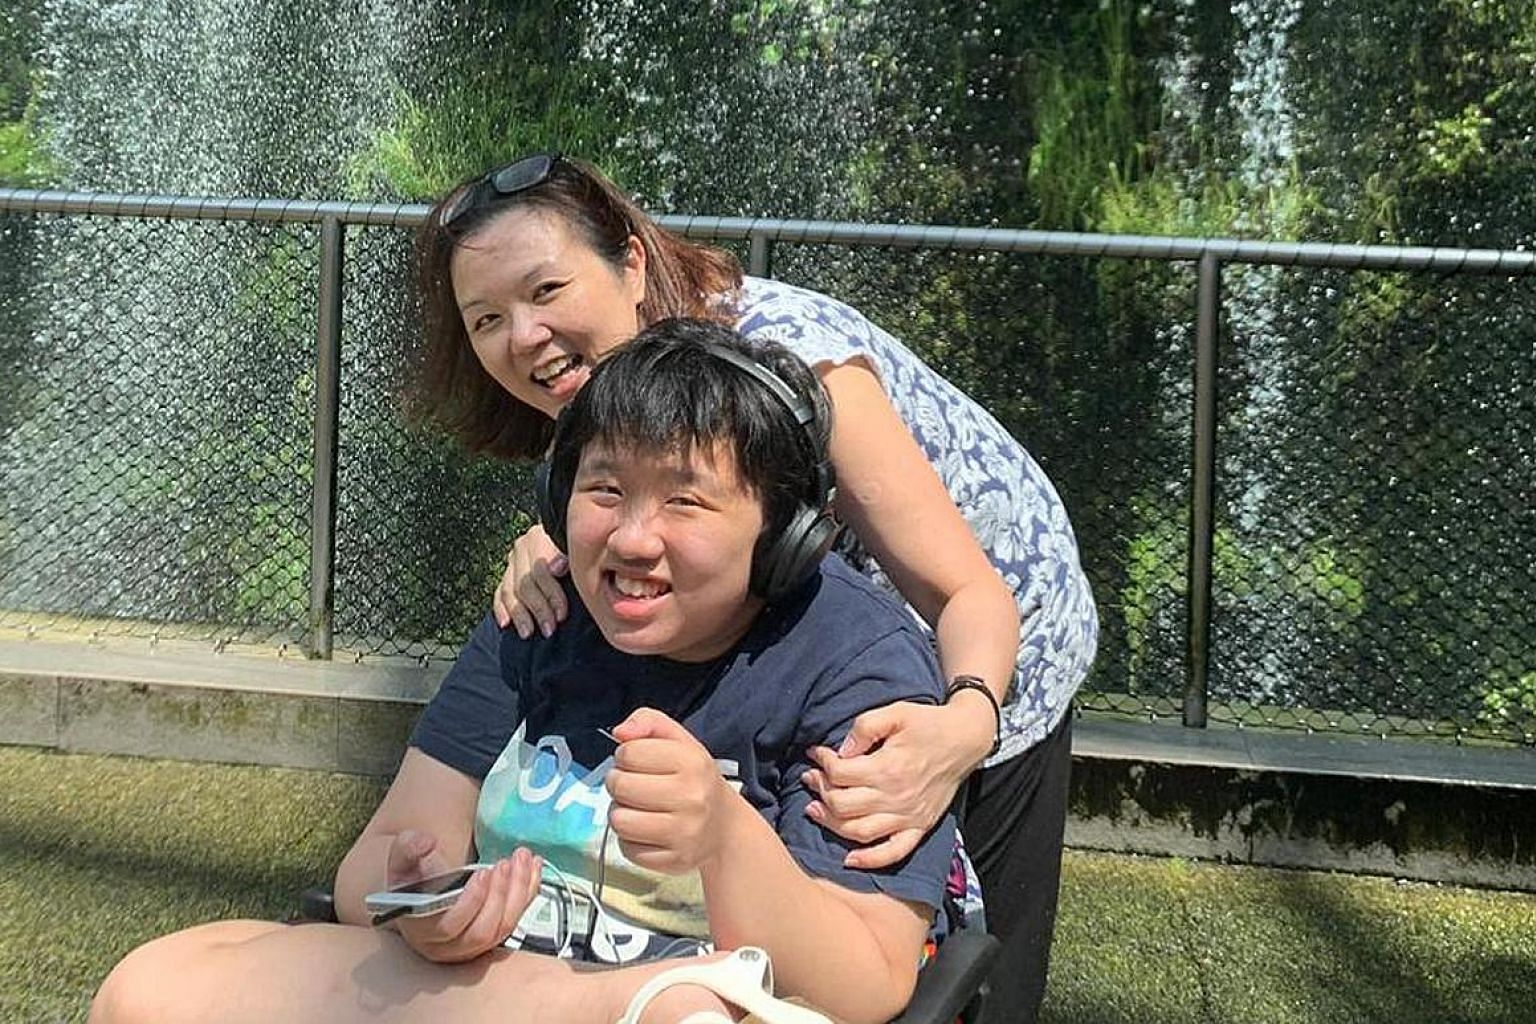 Amanda Khoo with her mum, who wants to be known only as Madam K. Ooi, at Changi Airport, one of her favourite places to visit, before the circuit breaker period started. The teenager has severe autism and wants to go outdoors, but refuses to wear a m